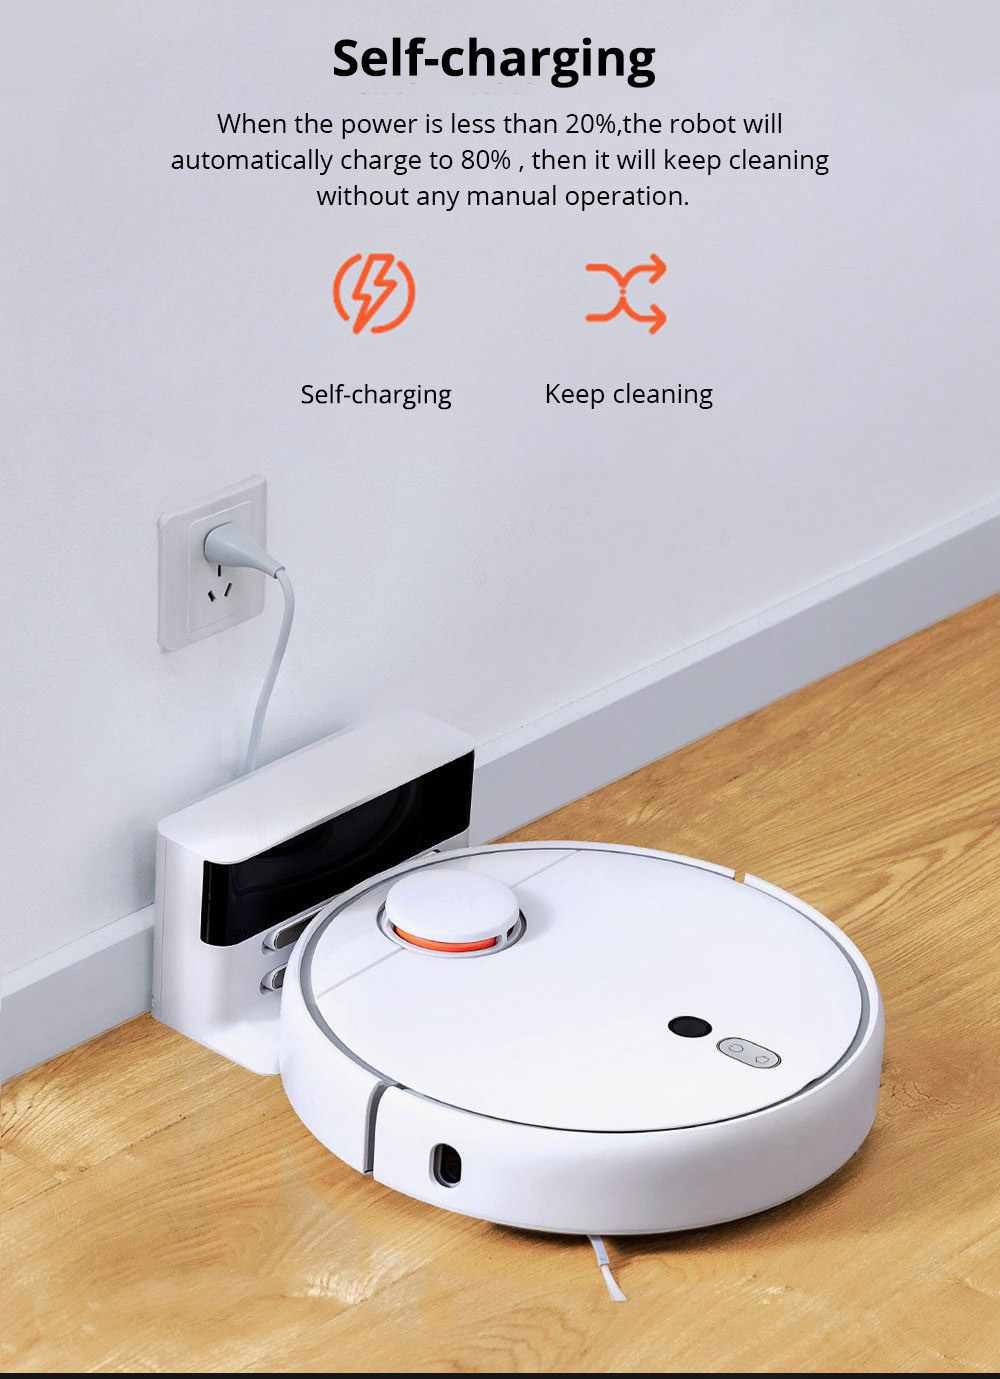 Xiaomi Mijia 1S Robot Vacuum Cleaner LDS + Visual Navigation 2000Pa Suction AI Image Recognition APP Zoned Cleaning Virtual Wall 5200mAh - White